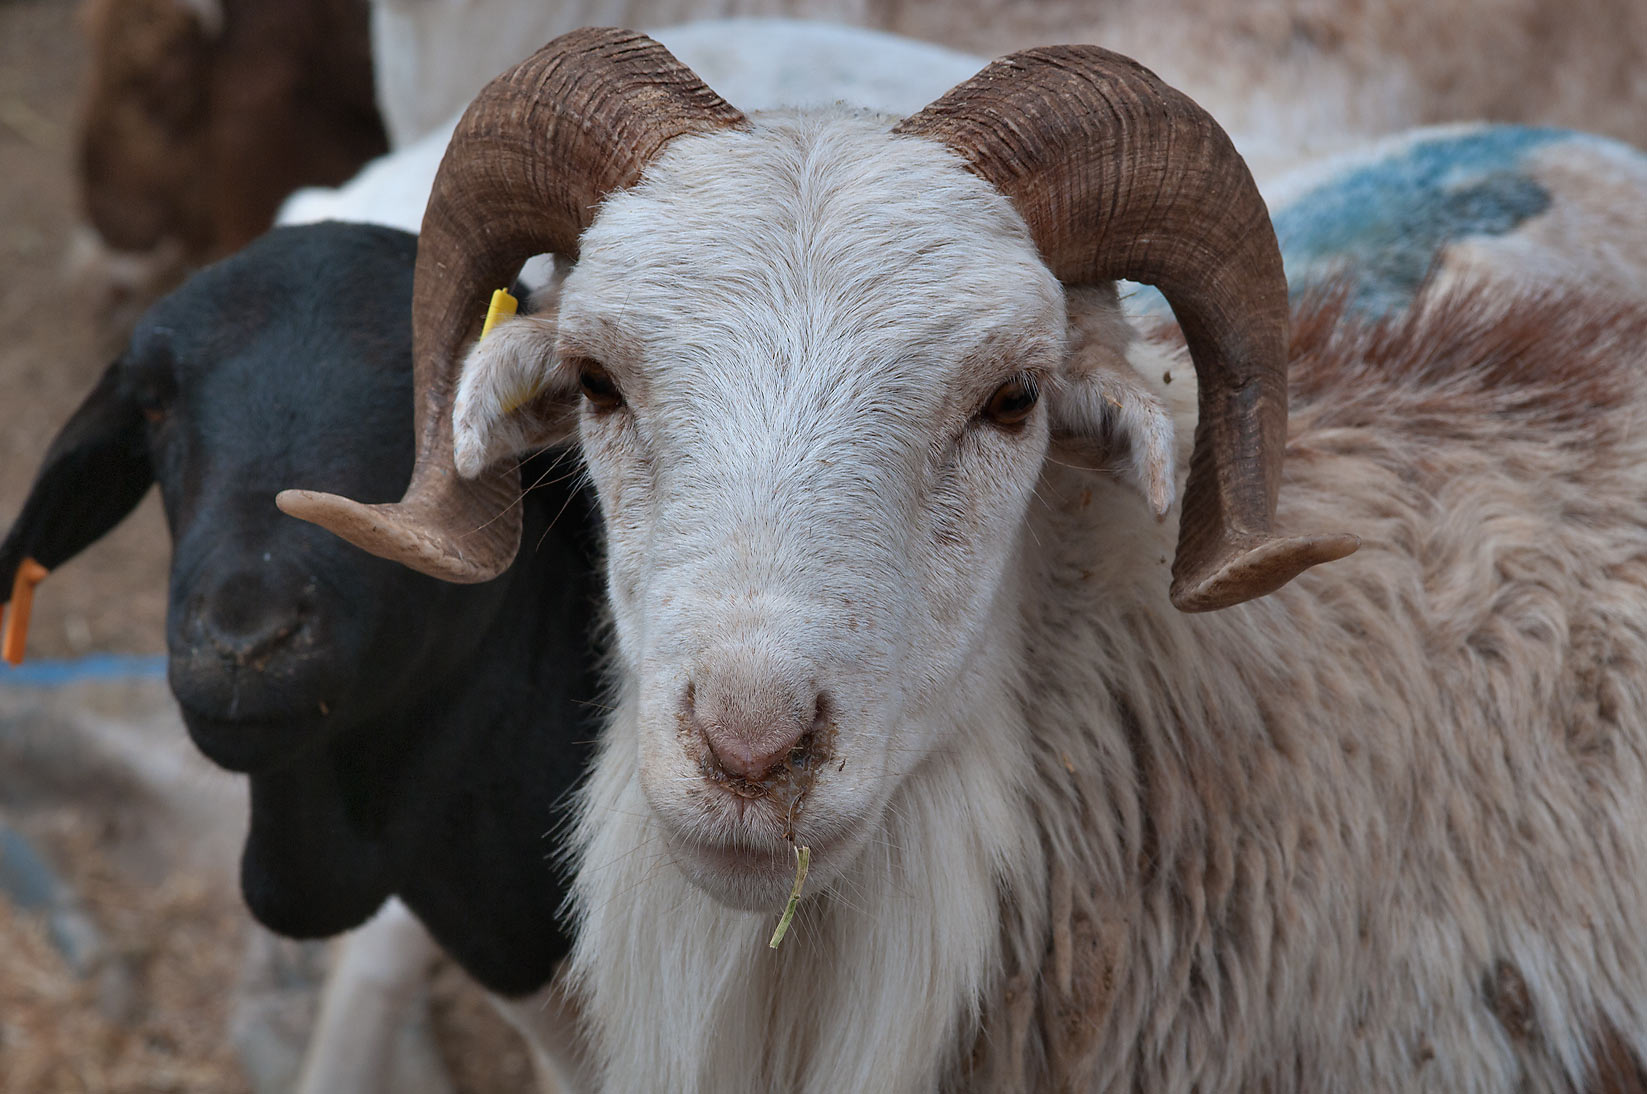 Ram with a runny nose in Sheep Market, Wholesale Markets area. Doha, Qatar